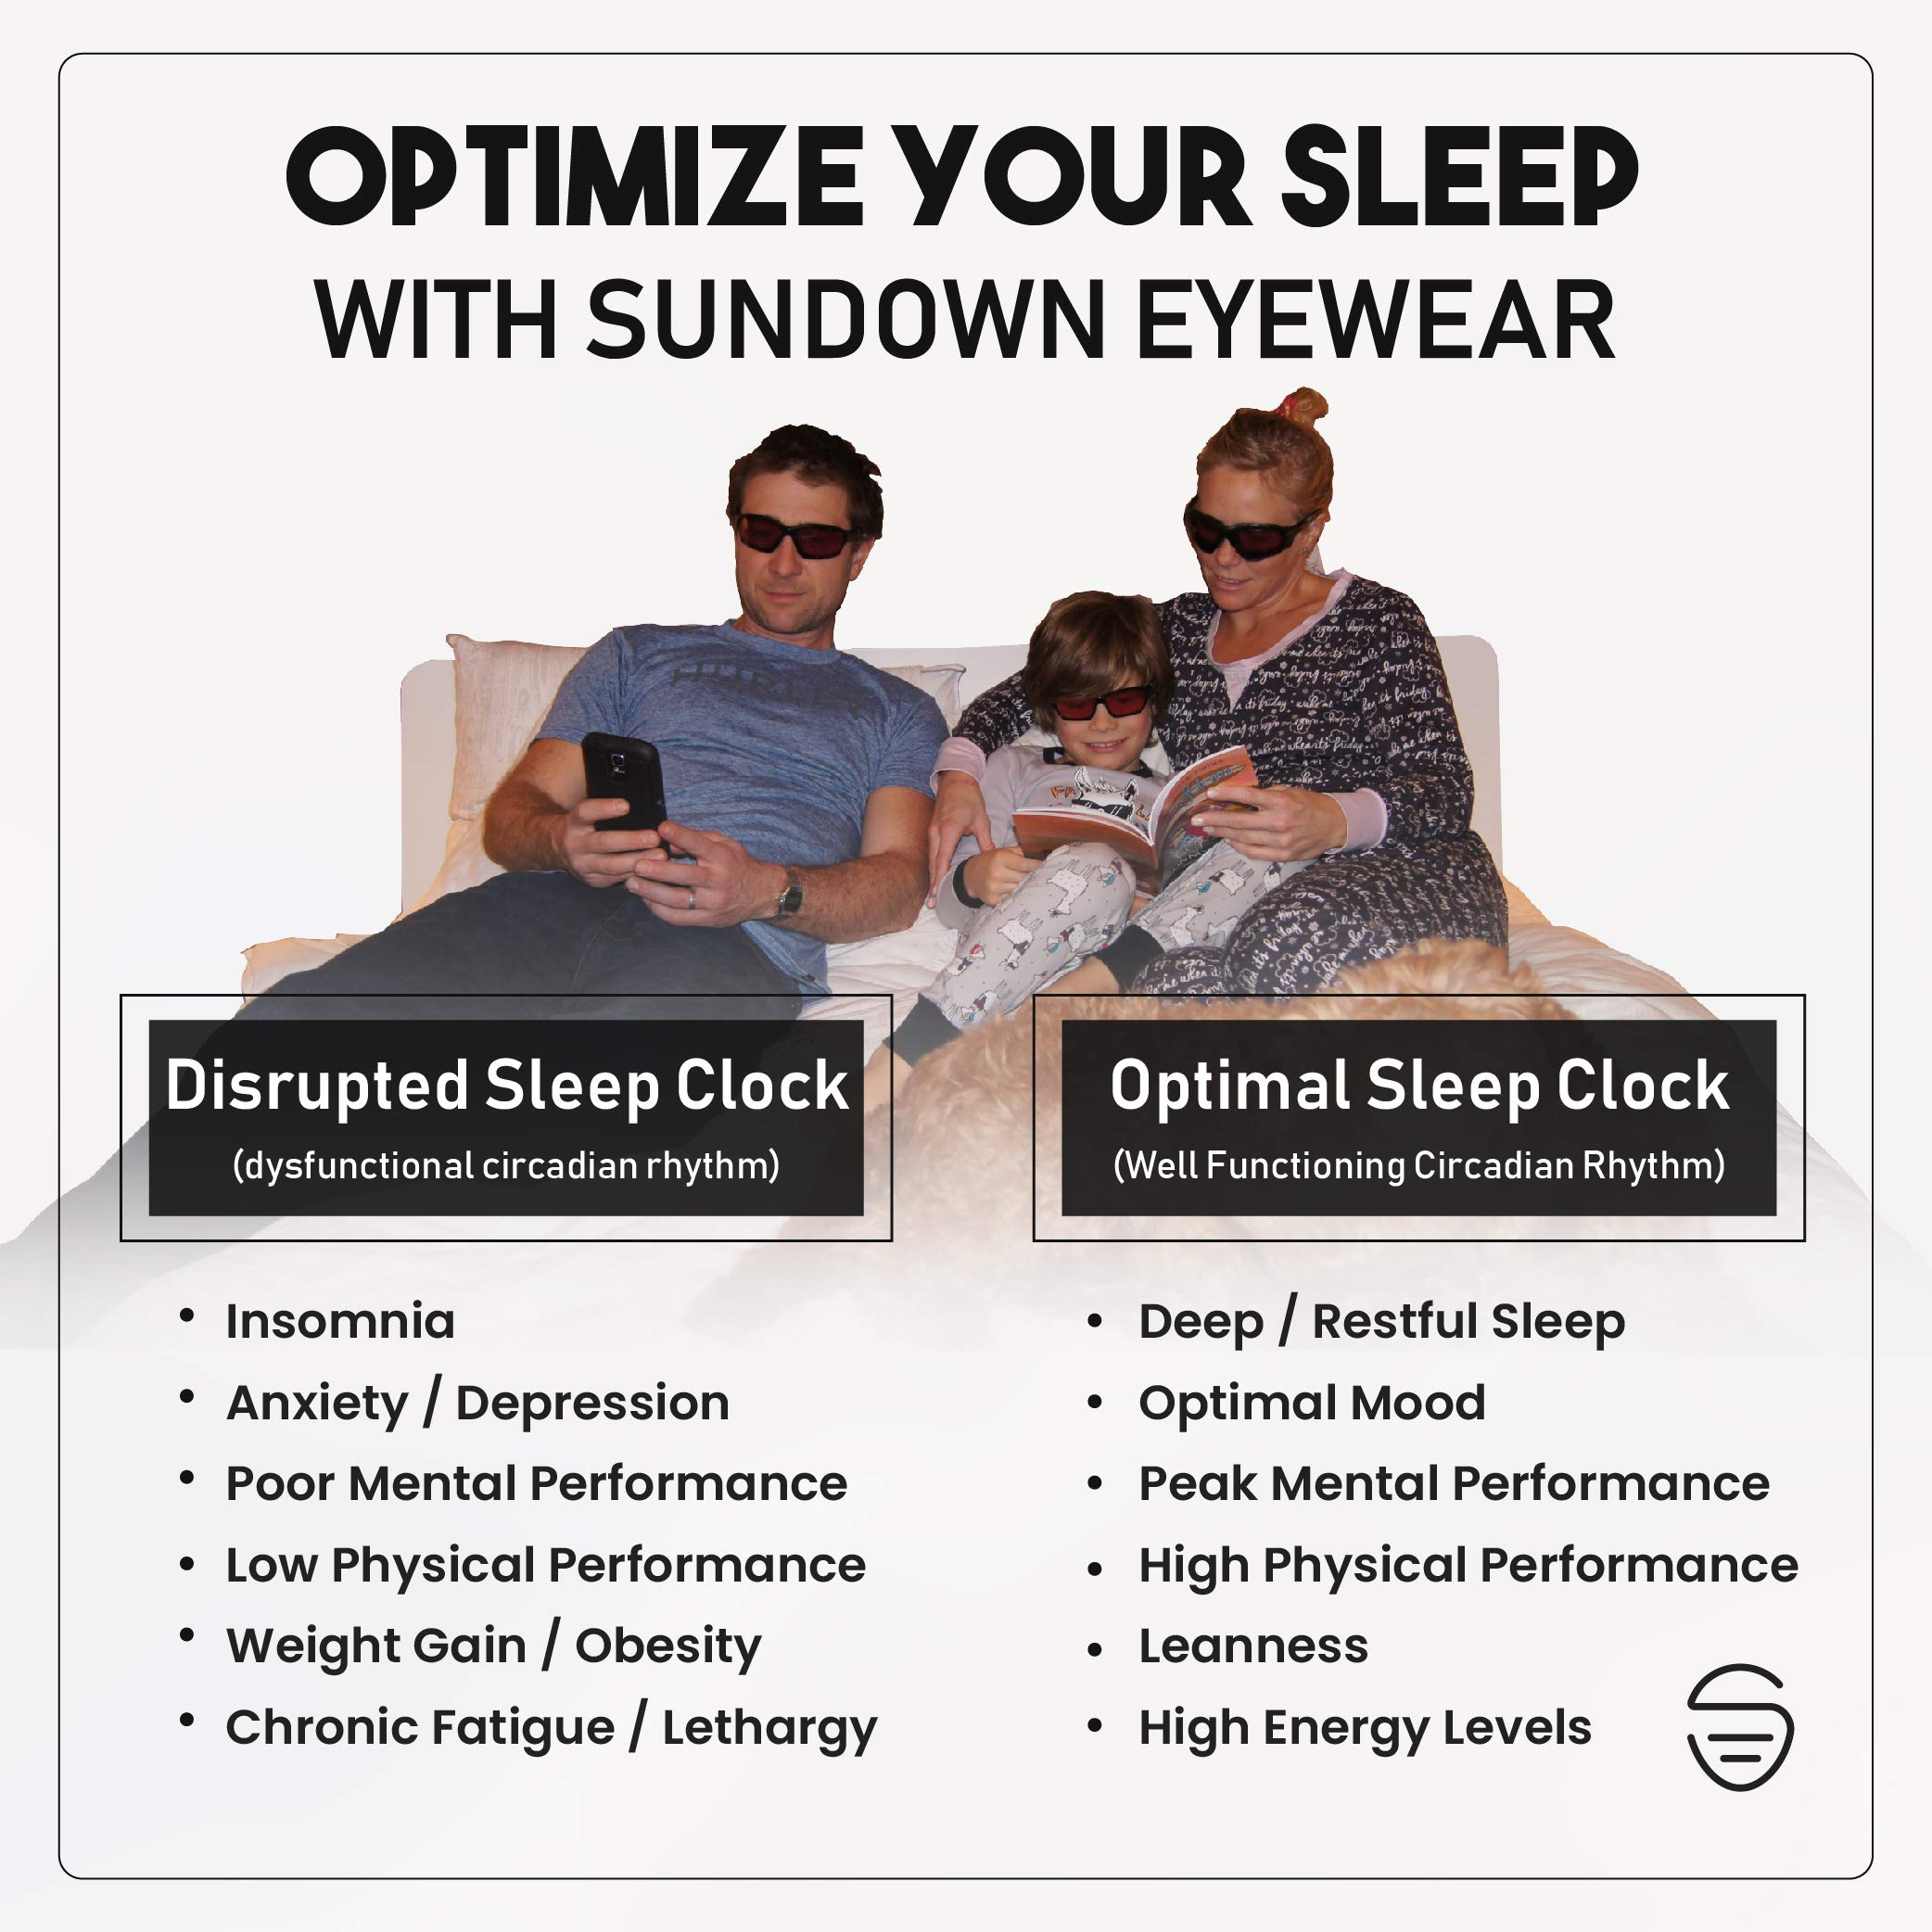 Blue Blocking Over Glasses - PRE-Sleep - RED Before Bed - PaleoTech® Dark Lens Blocks Blue & Green Light - Science Based (Dark Therapy) - Fall Asleep Faster & Optimize Your Hormones (Over Glasses)